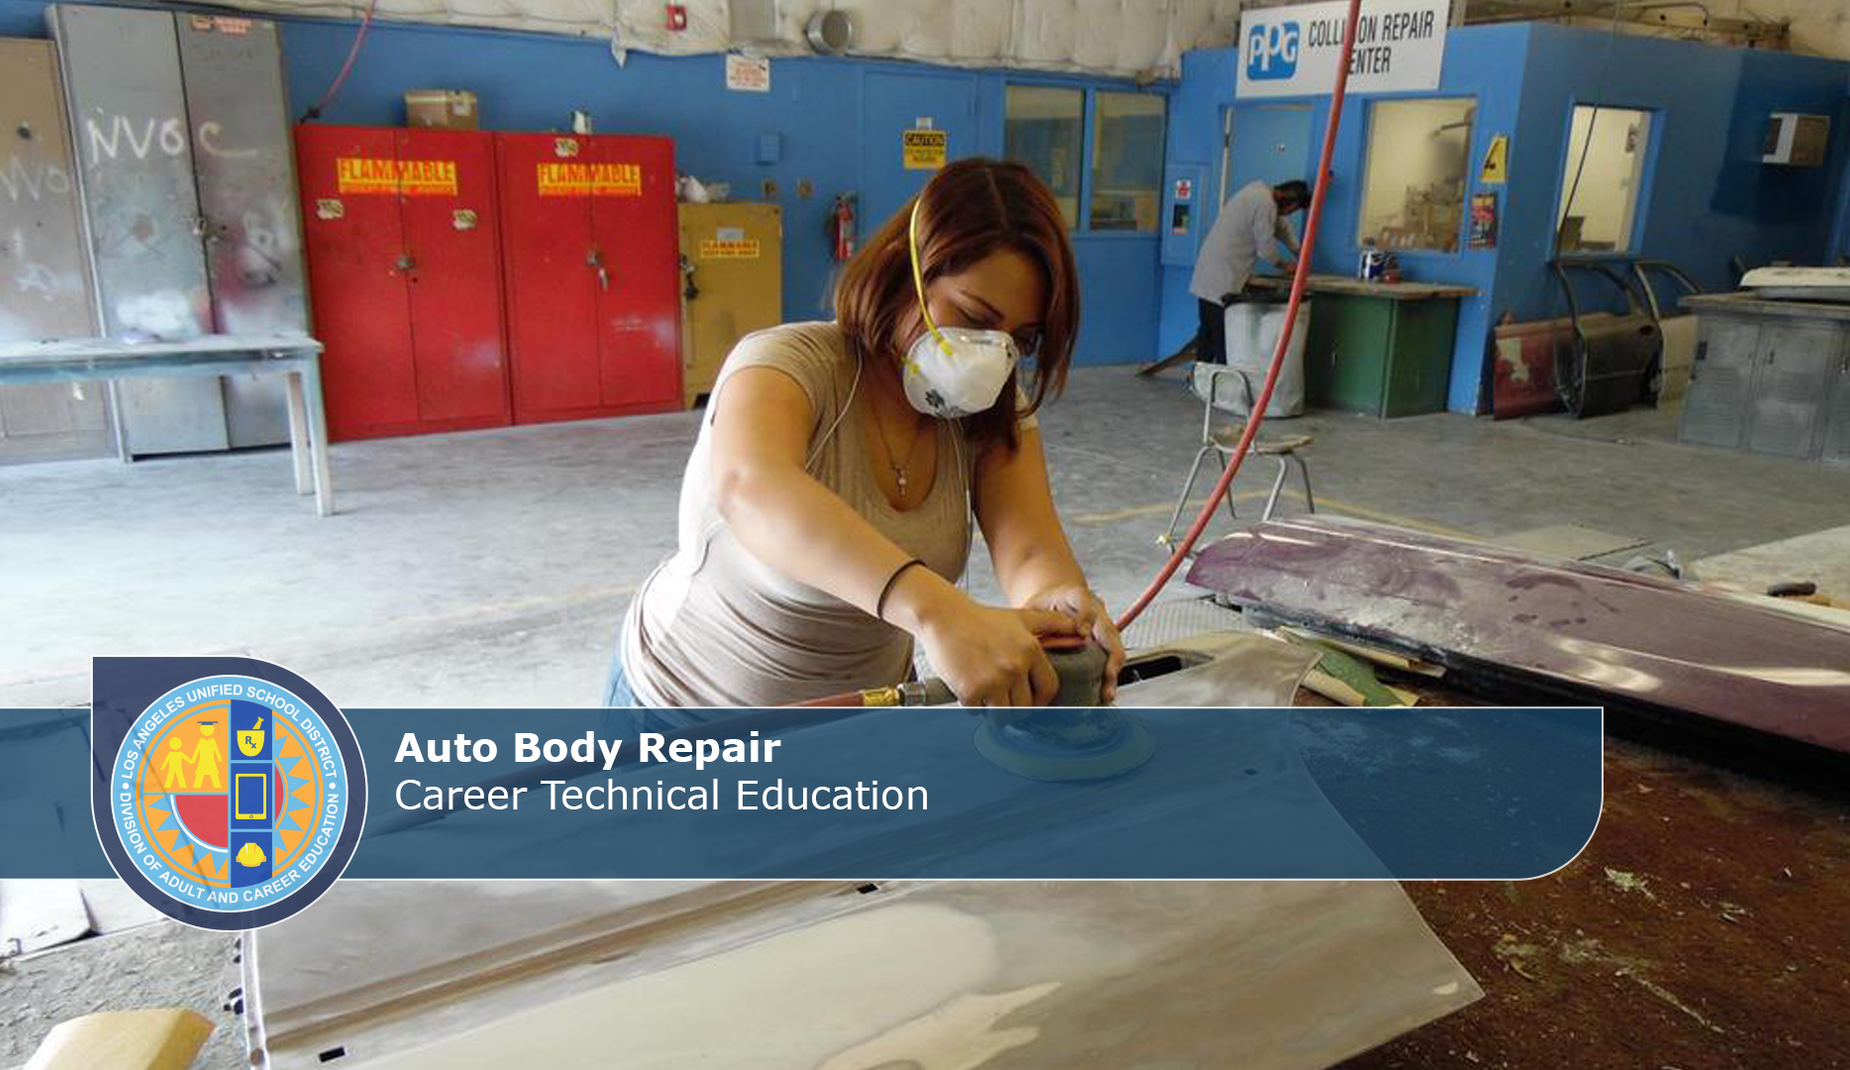 CTE Auto Body Repair